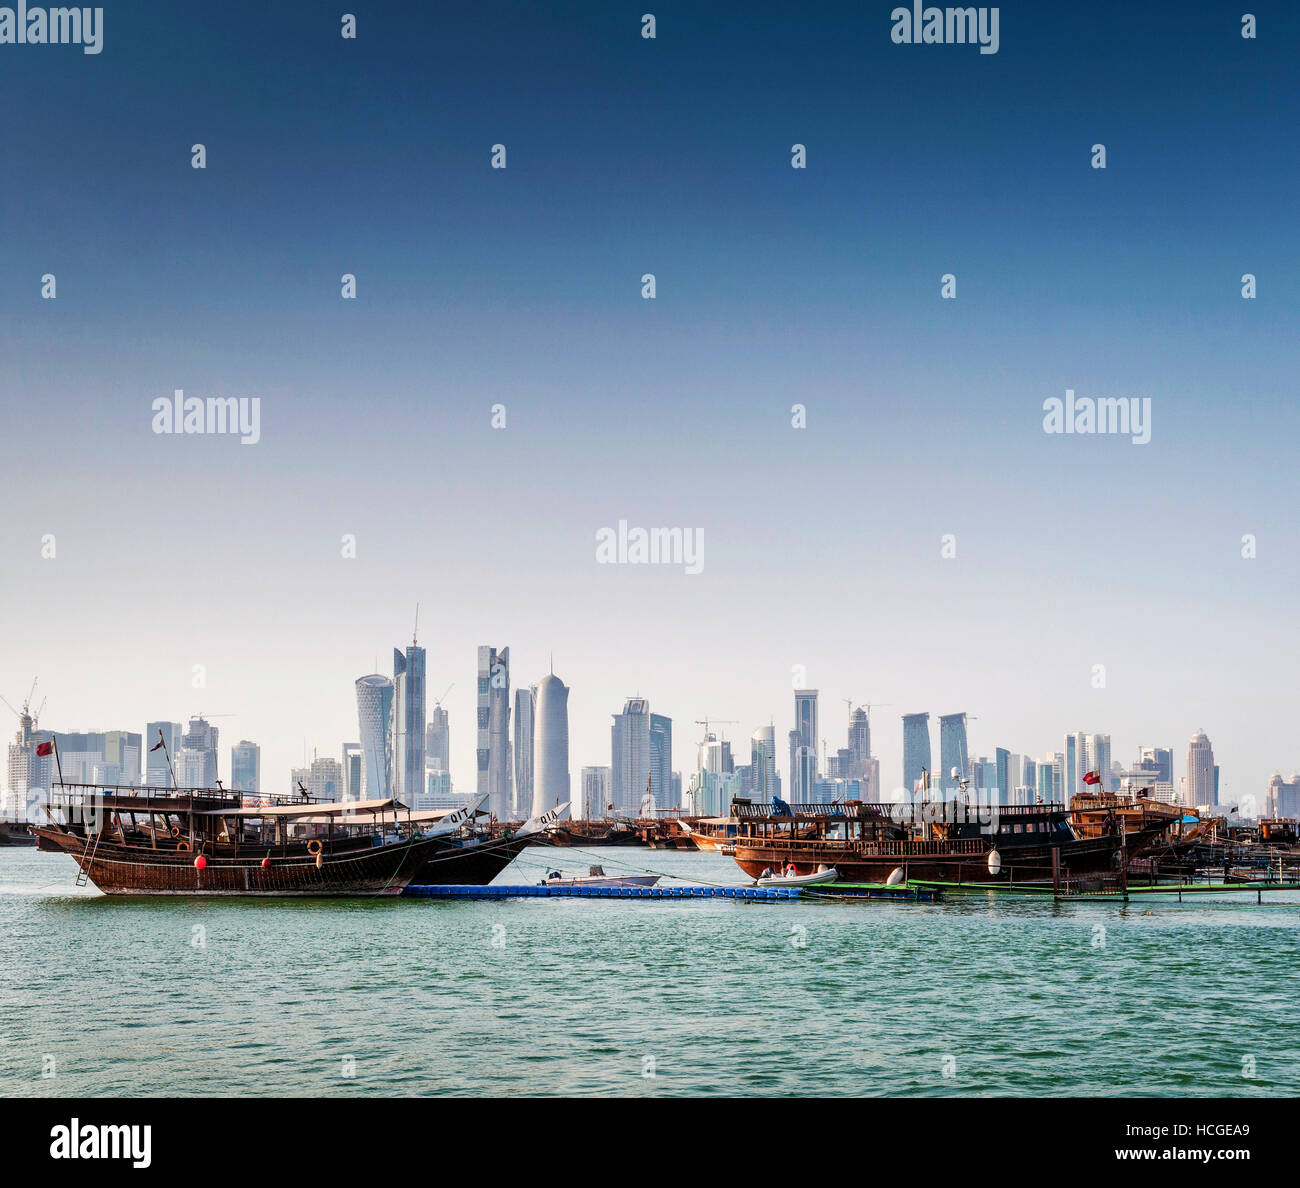 doha city skyscrapers urban skyline view and dhow boat in qatar - Stock Image